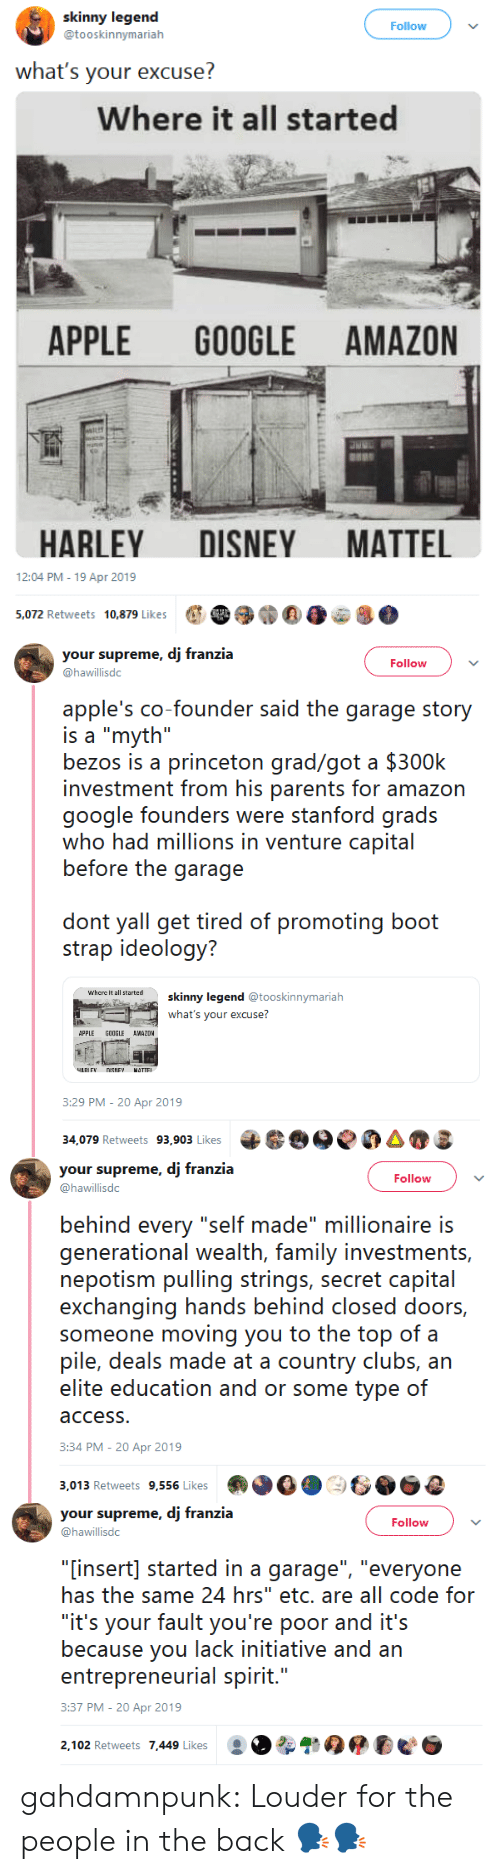 """deals: skinny legend  @tooskinnymarialh  Follow  what's your excuse?  Where it all started  APPLE GOOGLE AMAZON  HARLEY DISNEY MATTEL  12:04 PM-19 Apr 2019  e 39)""""E0e8.  5,072 Retweets  10,879 Likes   your supreme, dj franzia  @hawillisdc  Follow  apple's co-founder said the garage story  is a """"myth""""  bezos is a princeton grad/got a $300k  investment from his parents for amazon  google founders wre staniord grads  who had millions in venture capital  before the garage  don yal gei üred of promoting booi  strap ideology?  where it all tartedskinny legend@  ooskinnymariah  what's your excuse?  APPLE GOOGLE AWAZOM  :29 PM-20 Apr 2019  34,079 Retweets 93,903 Likes 6e0AS   your supreme, dj franzia  @hawillisdc  Follow  behind every """"self made"""" millionaire is  generational wealith, farmily ivestrnnis,  nepotism pulling strings, secret capital  exchanging hands behind closed doors,  someone moving you to the top of a  pile, deals made at a country clubs, arn  access  3:34 PM-20 Apr 2019  3,013 Retweets 9,556 Likes   your supreme, dj franzia  @hawillisdc  Follow  """"[insert] started in a garage"""", """"everyone  has the same 24 hrs"""" etc. are all code for  """"it's your fault you're poor and it's  because you lack initiative and an  entreprenerial spirit...  3:37 PM-20 Apr 2019  2,102 Retweets 7,449 Likes gahdamnpunk:  Louder for the people in the back 🗣🗣"""